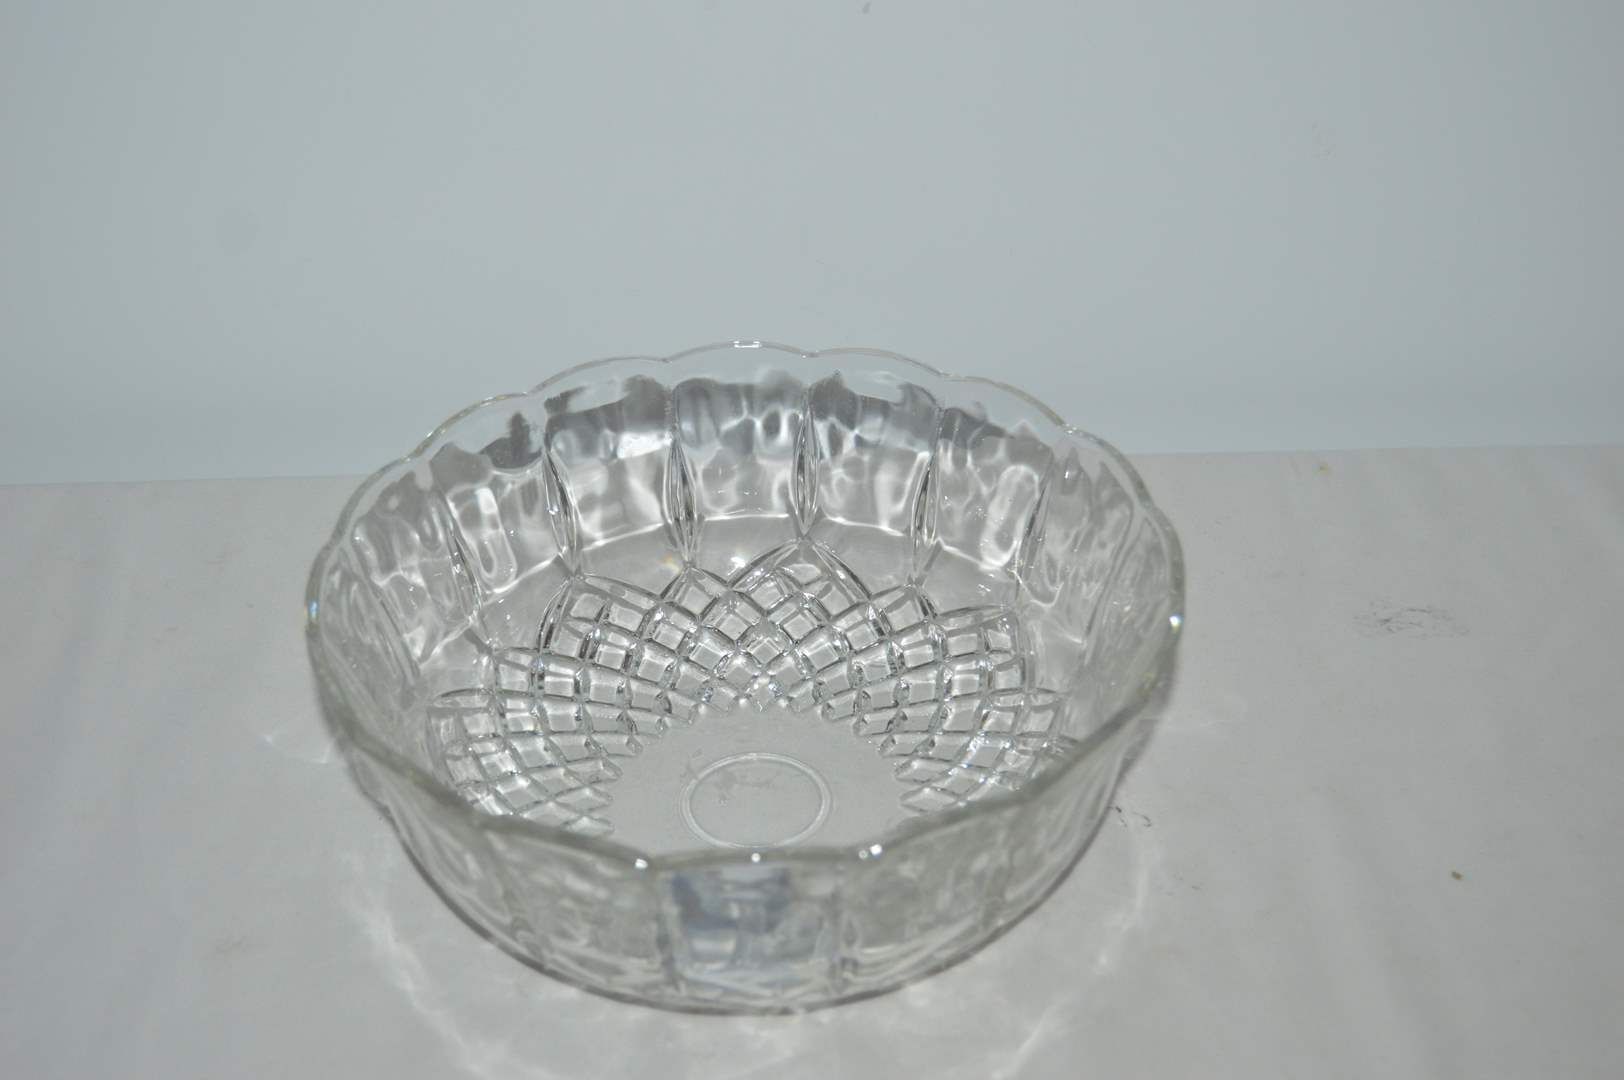 Lot # 43 Heavy cut glass crystal serving bowl (main image)